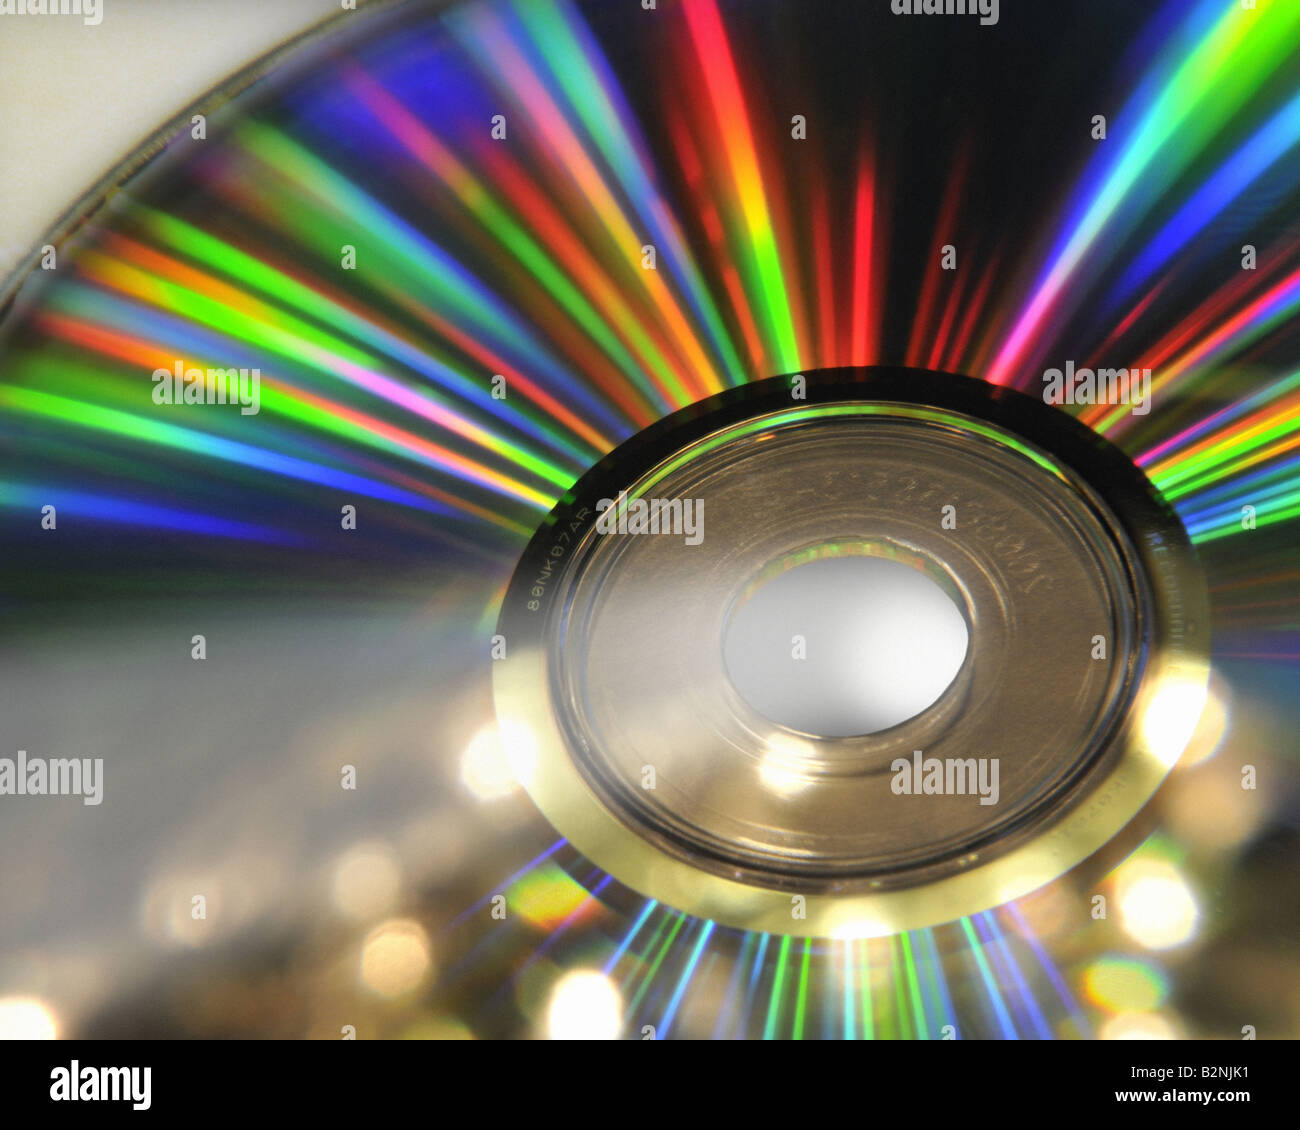 Technologie CONCEPT : Close-up view of CD Photo Stock